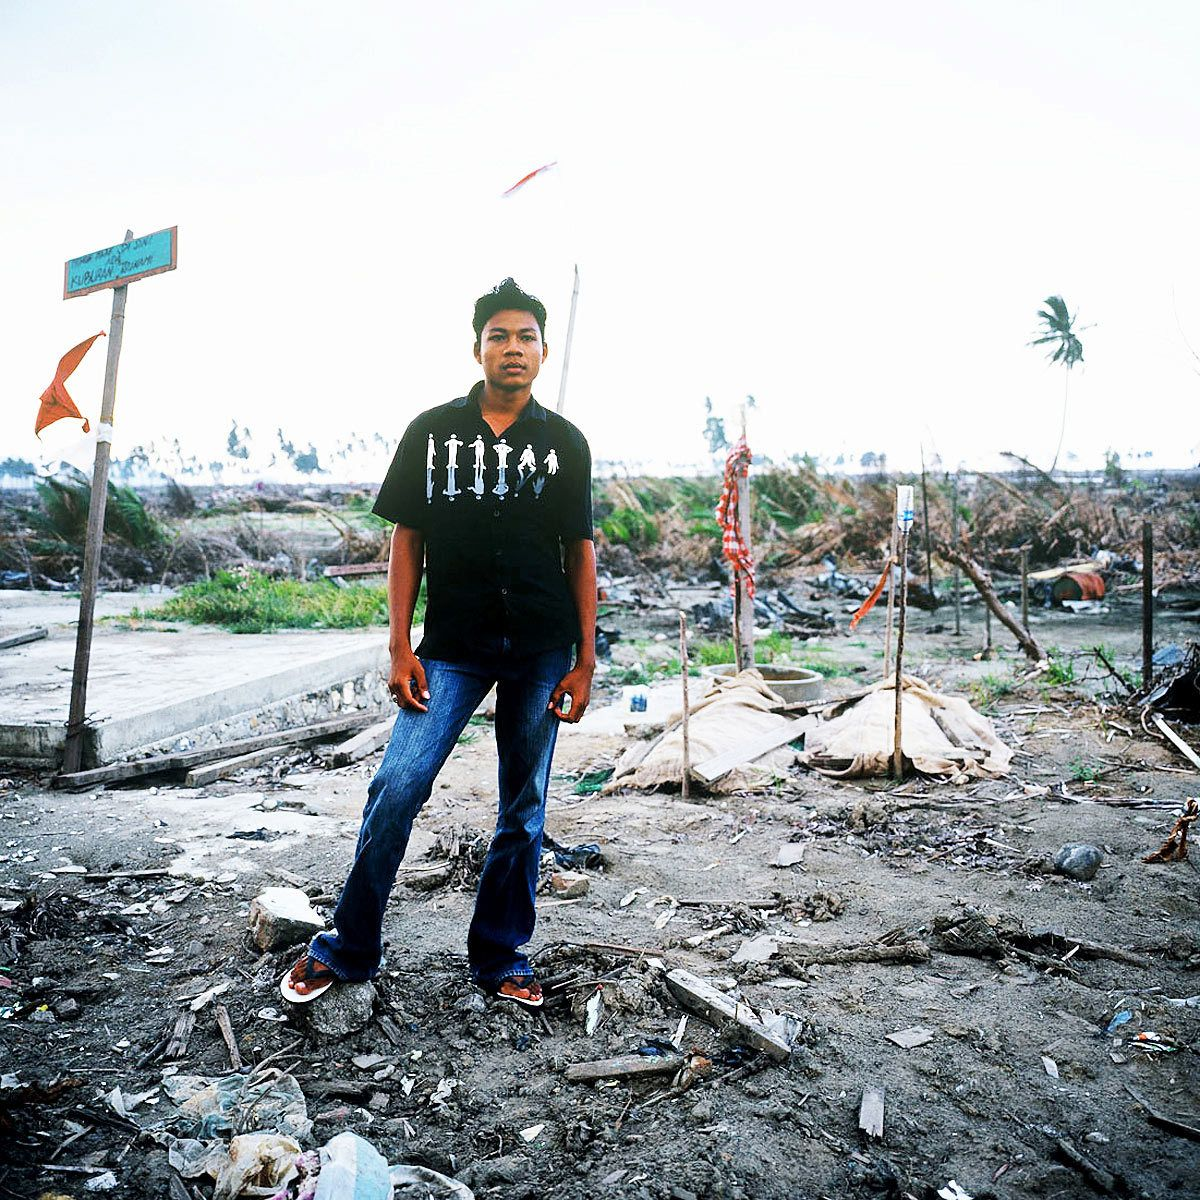 Amri stands in front of his family's graves